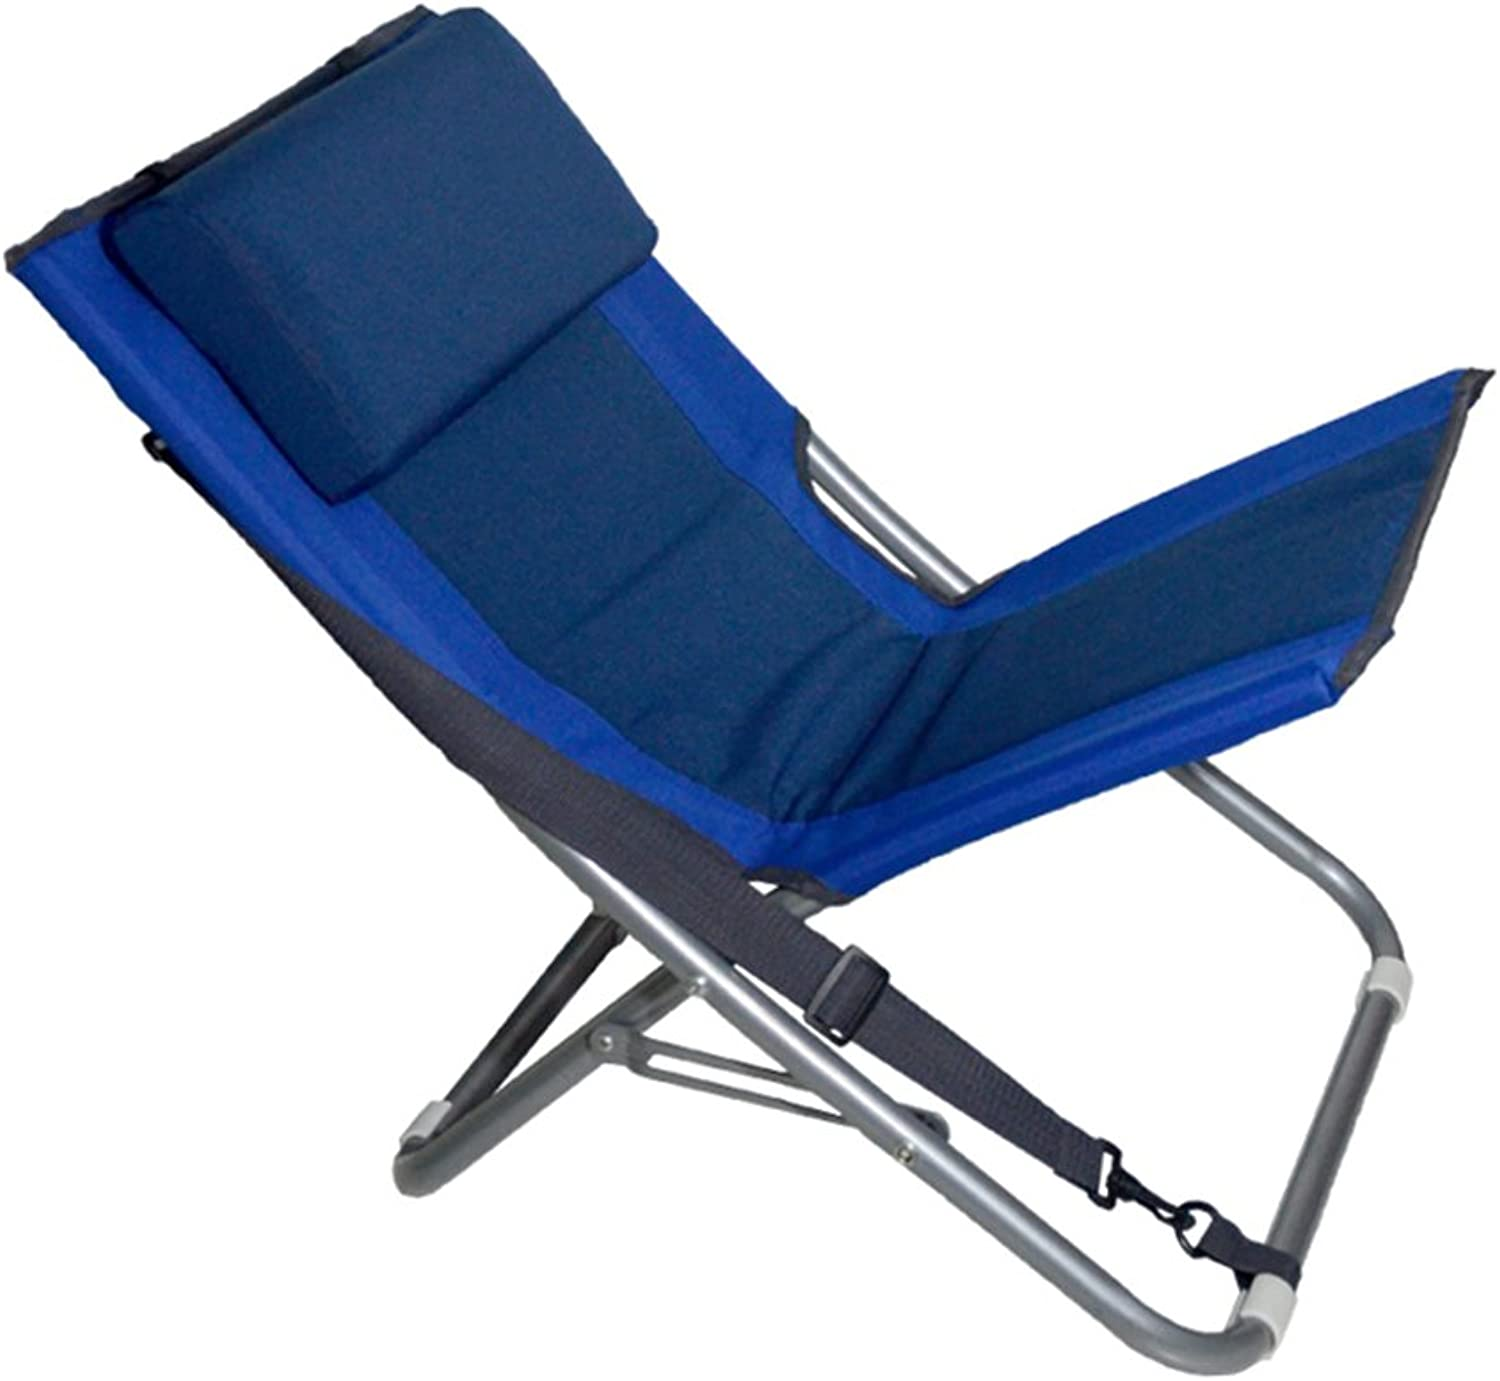 Recliners Chairs Tatami Outdoor Back Folding Chair Portable Camping Chair Bring Your own Pillow Beach Fishing Chair